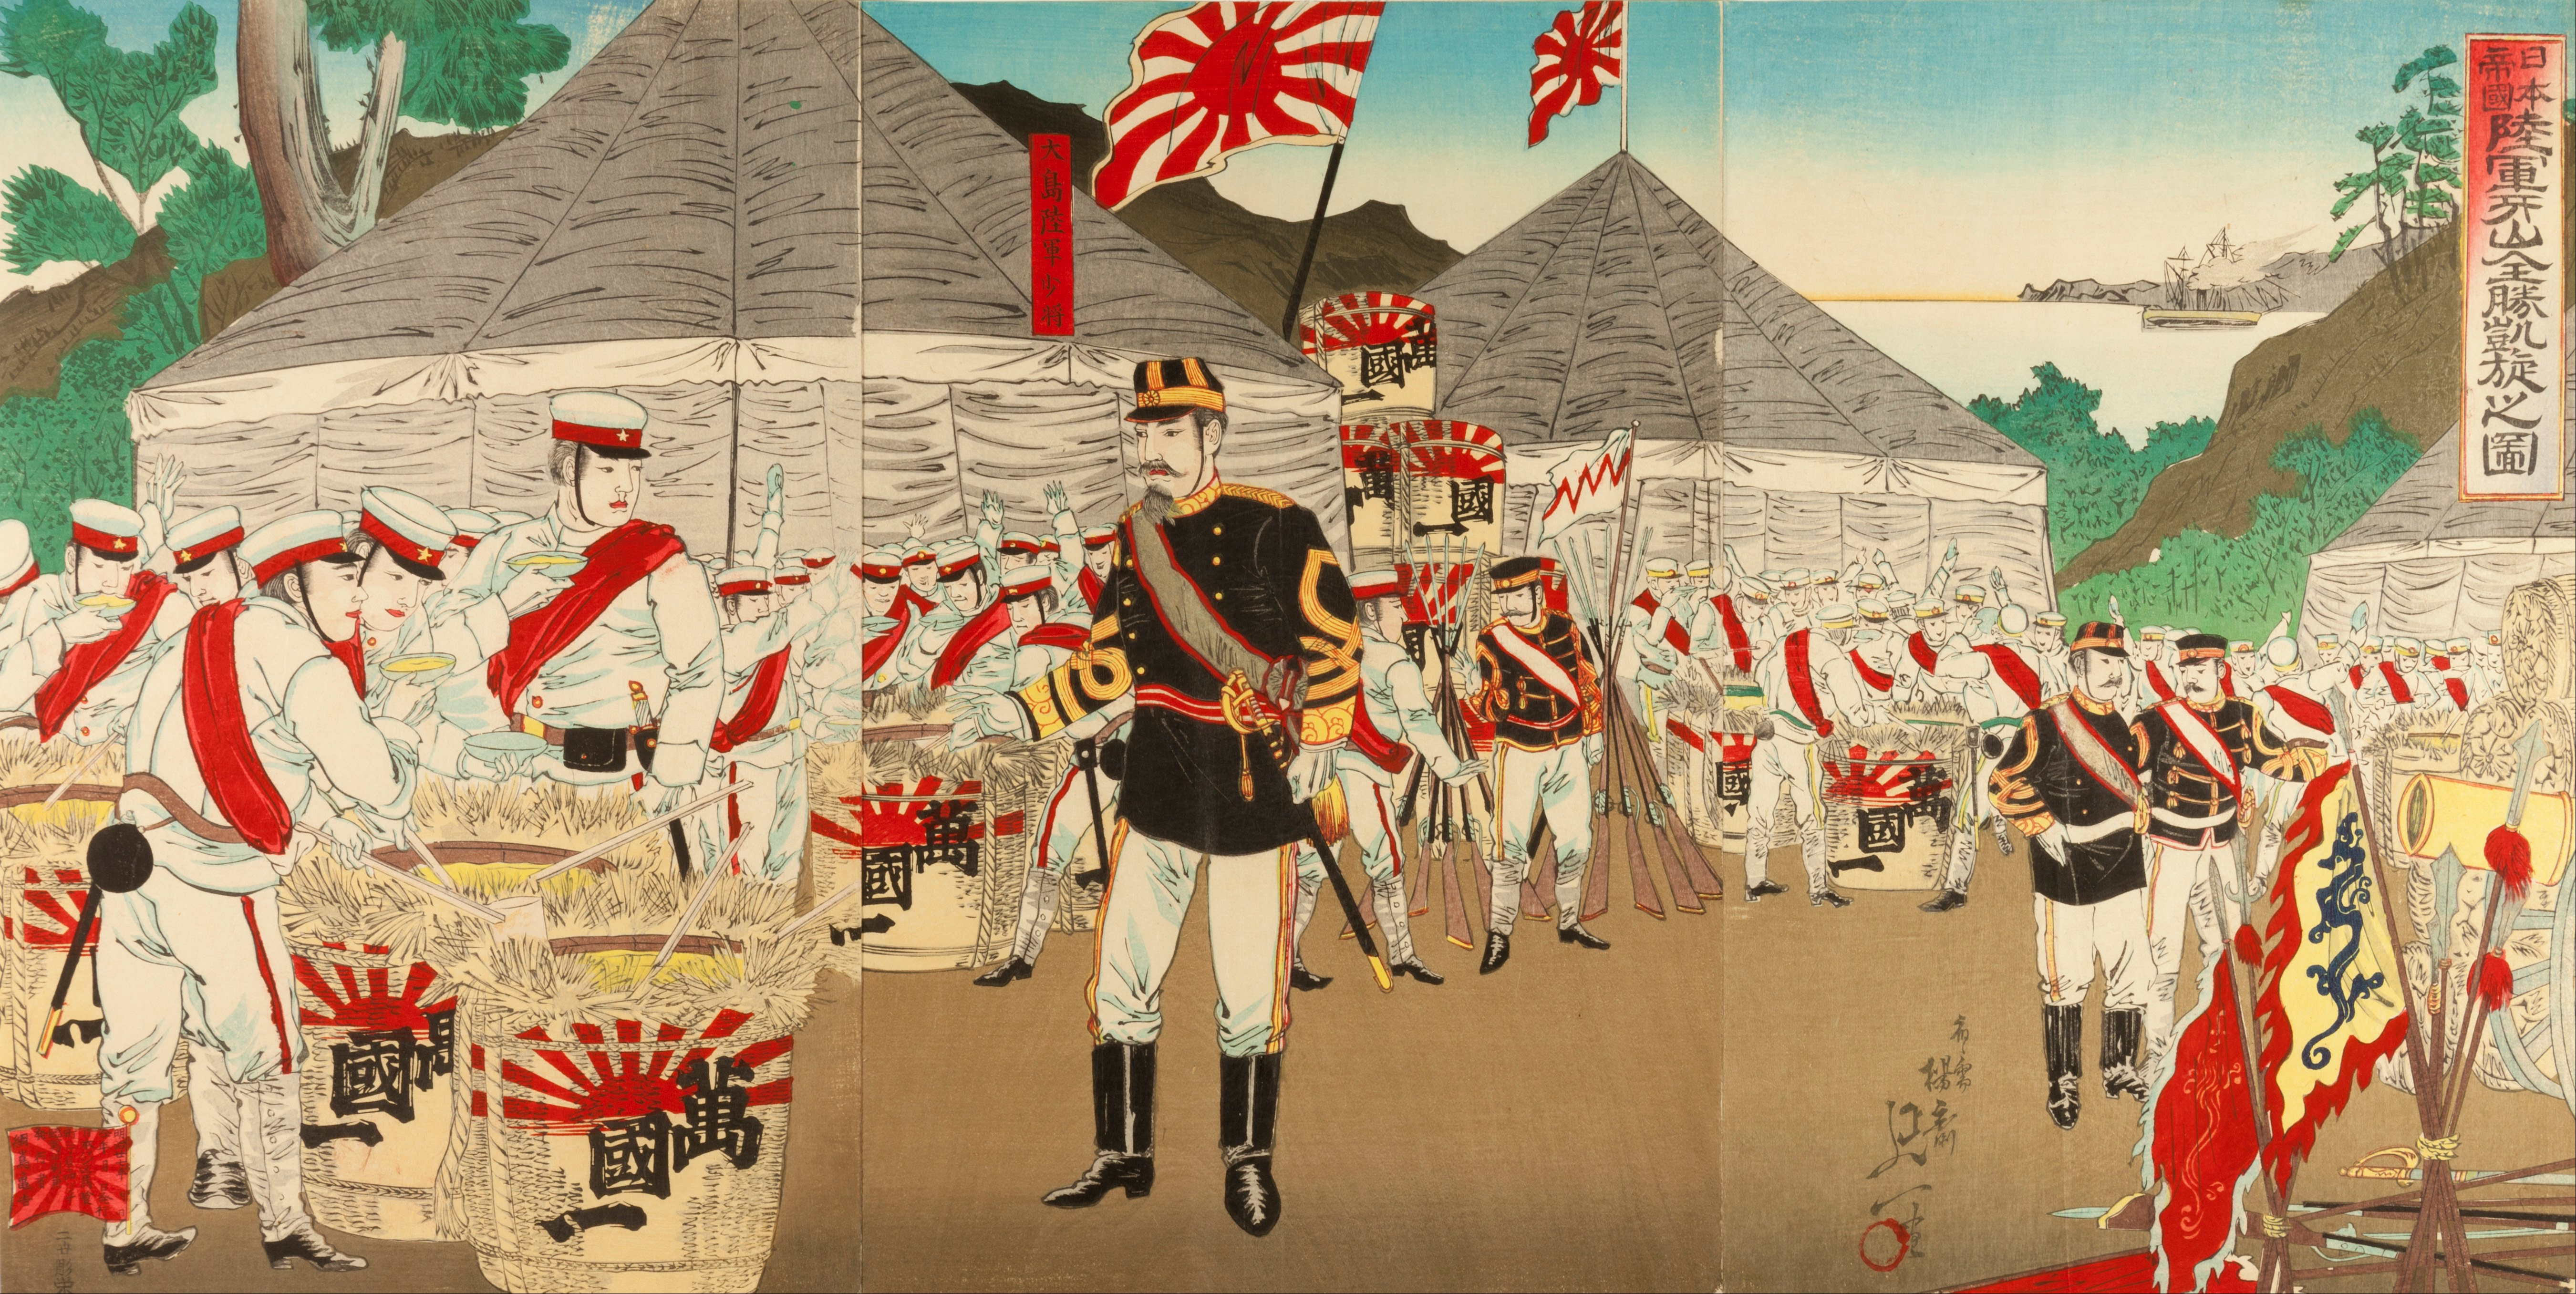 an analysis of japans imperial Cambridge core - global history - japan's imperial underworlds - by david r  ambaras.